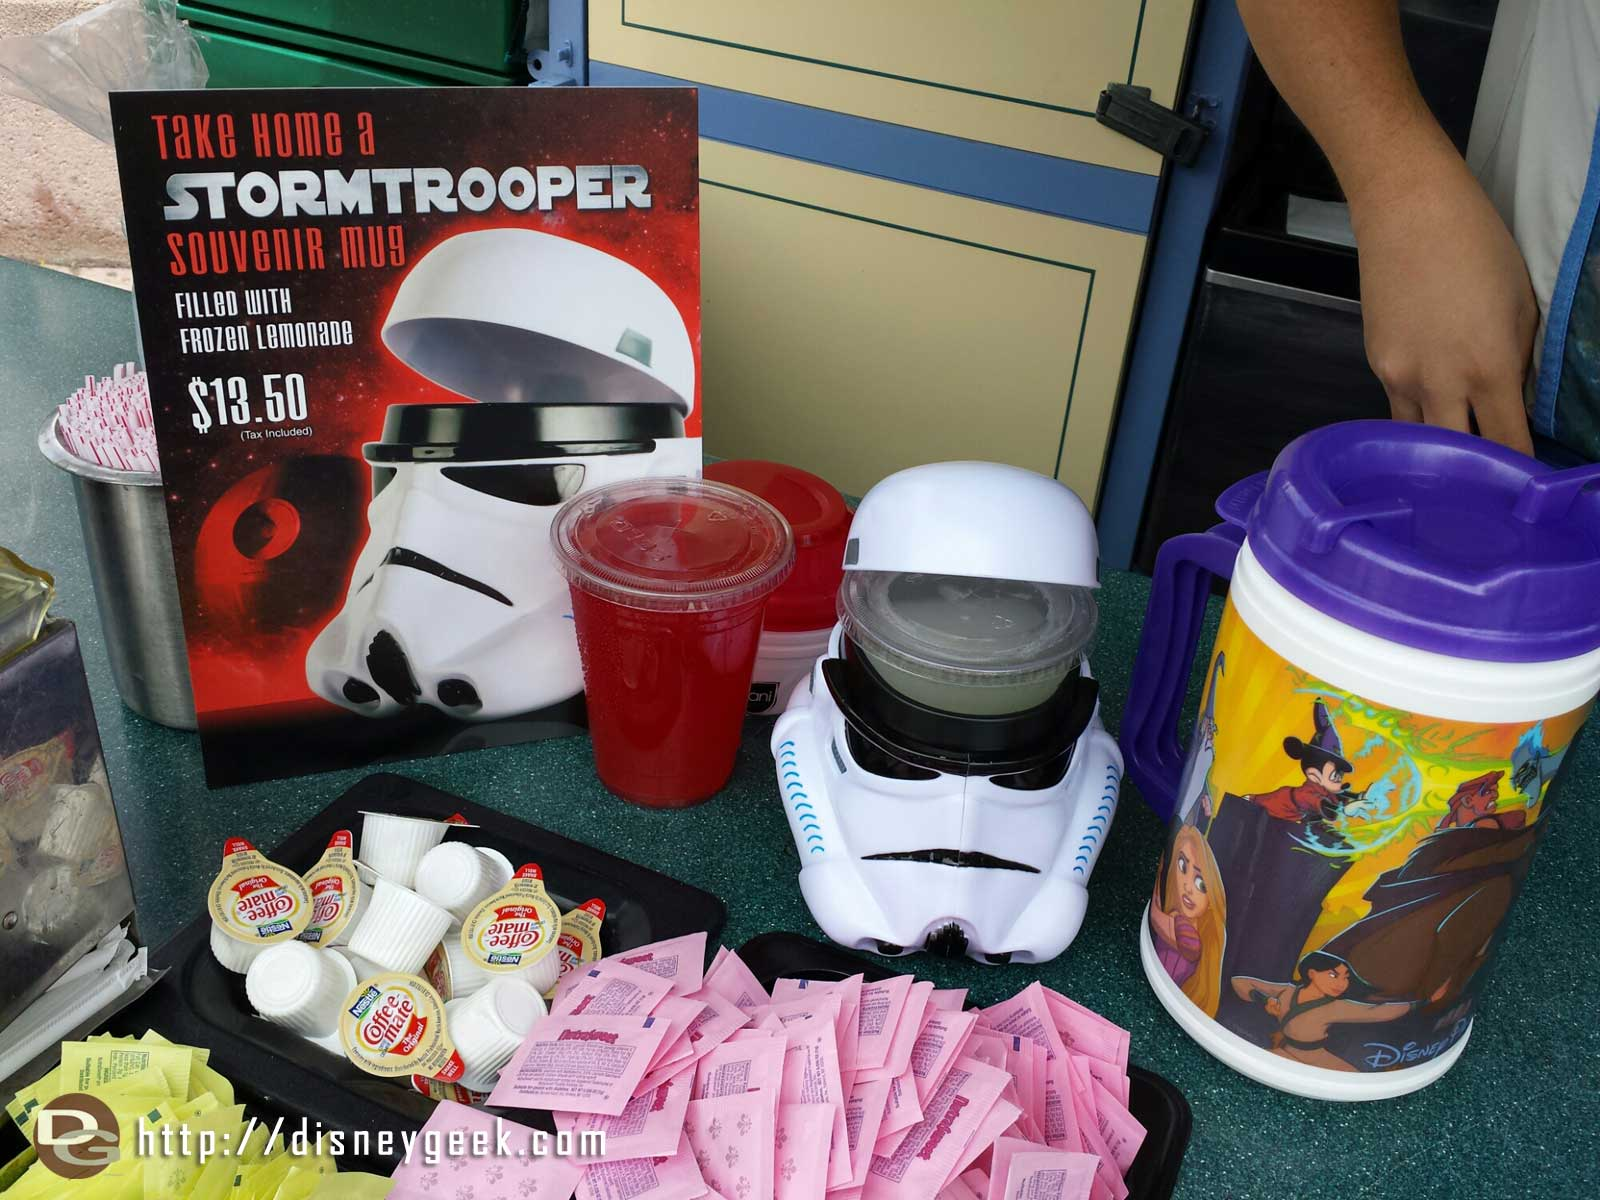 Stormtrooper mugs in Tomorrowland